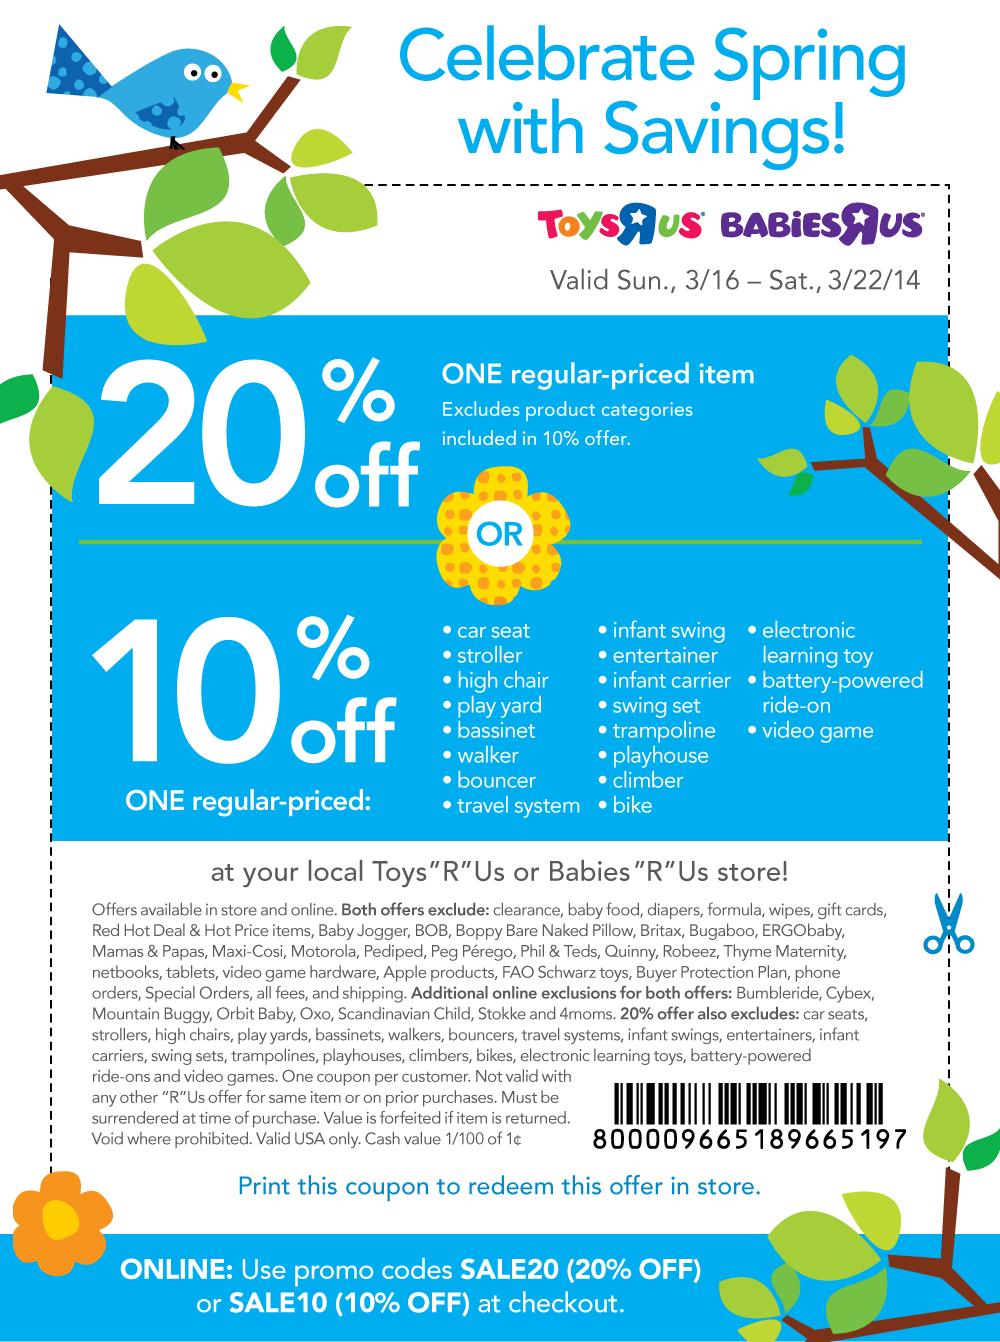 Kirklands coupons december 2013 - Toys R Us Coupon Toys R Us Promo Code From The Coupons App Off A Single Item At Babies R Us Toys R Us Or Online Via Promo Code February